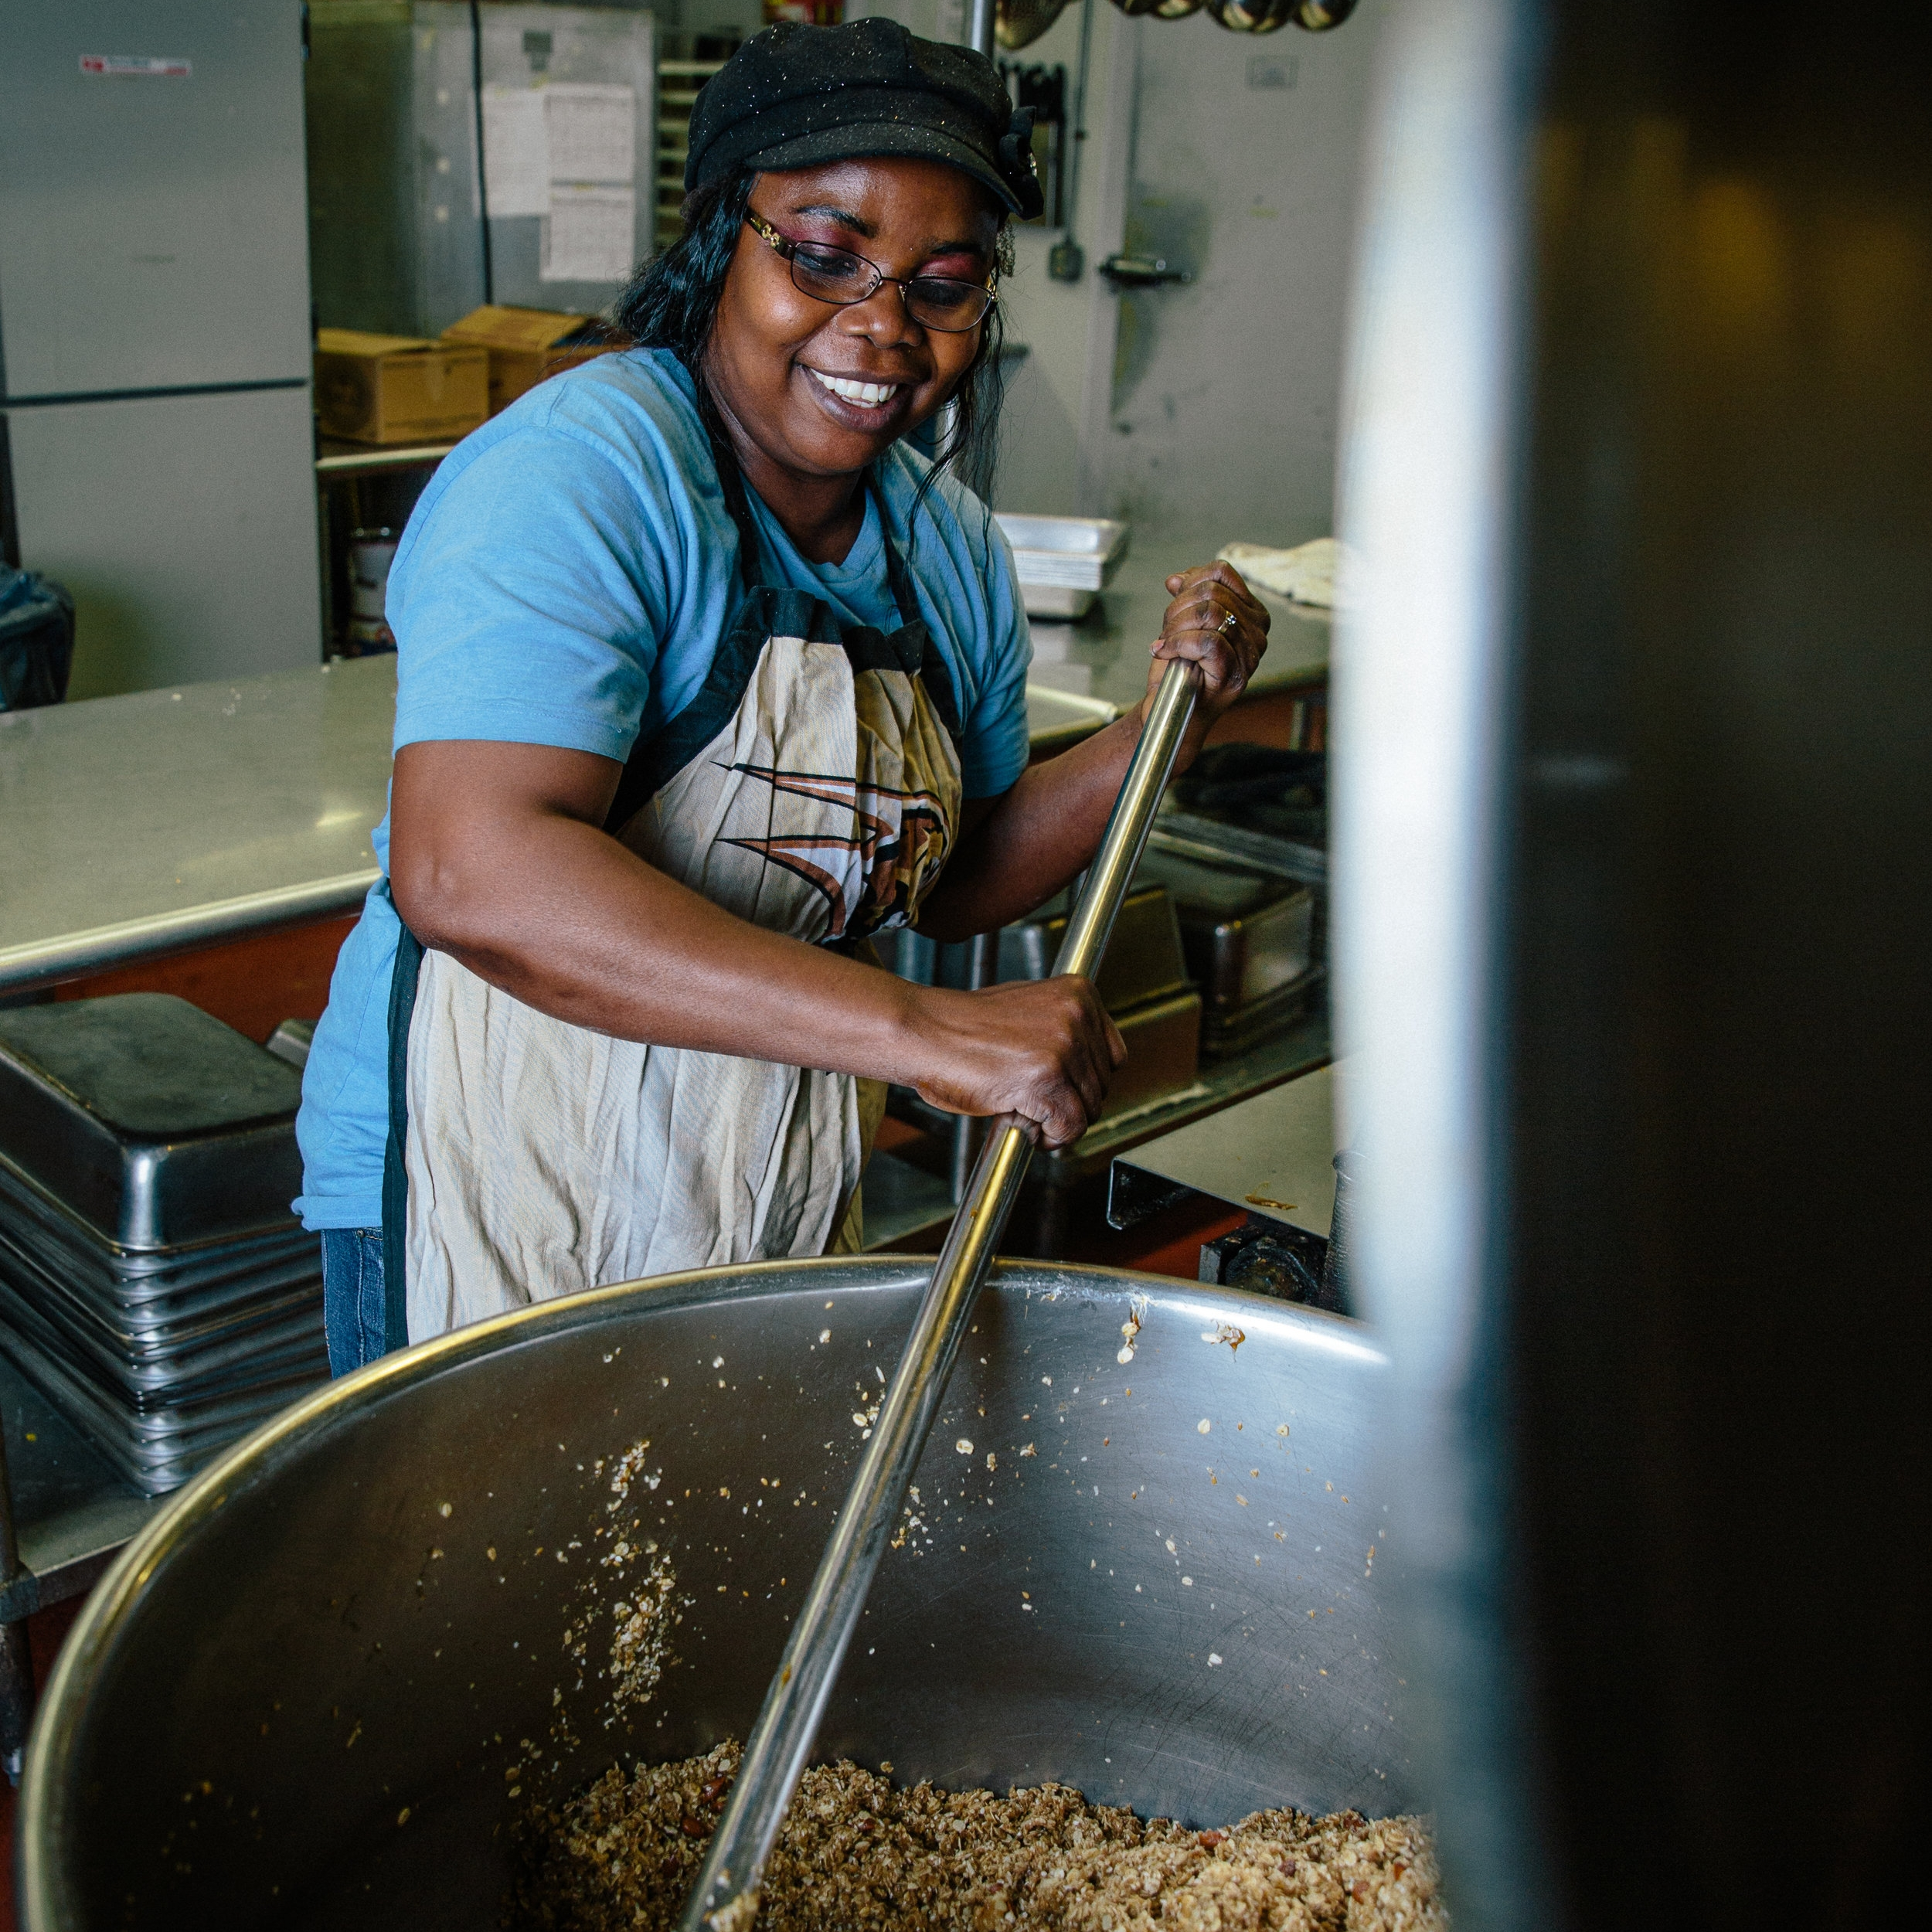 BOLAJoKO, Assistant kitchen manager, TRainer   Bola, originally from Nigeria, joined us as our Servesafe expert, after graduating from the Amos House culinary program. If you'd like to learn how to mix 250 lbs of granola in an evening, she'll be happy to provide a lesson. Just stop by.